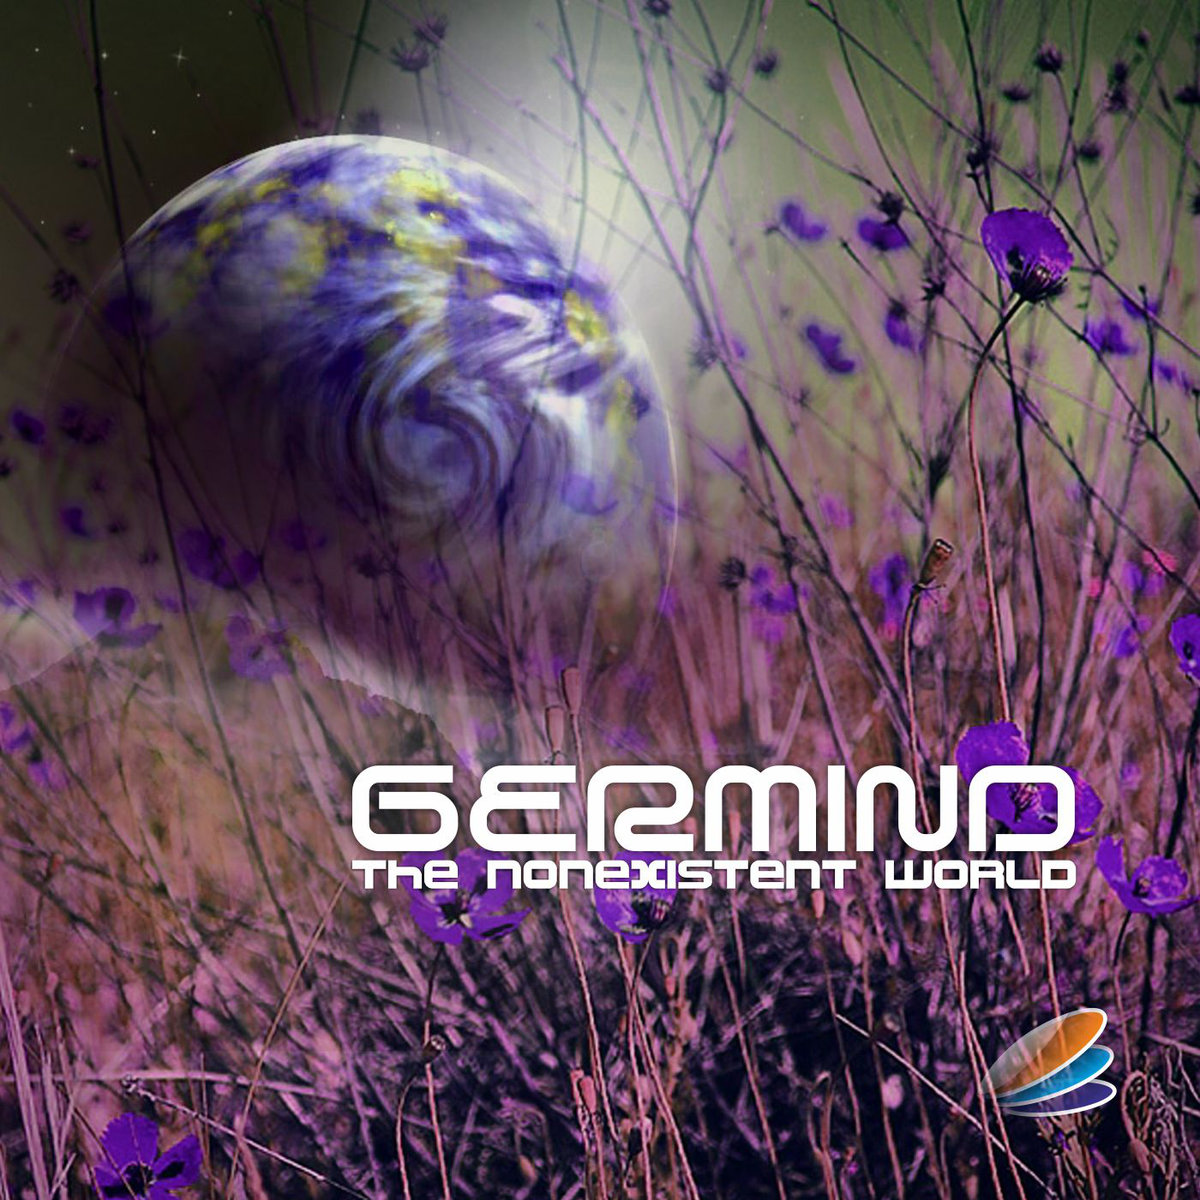 Germind - The Nonexistent World